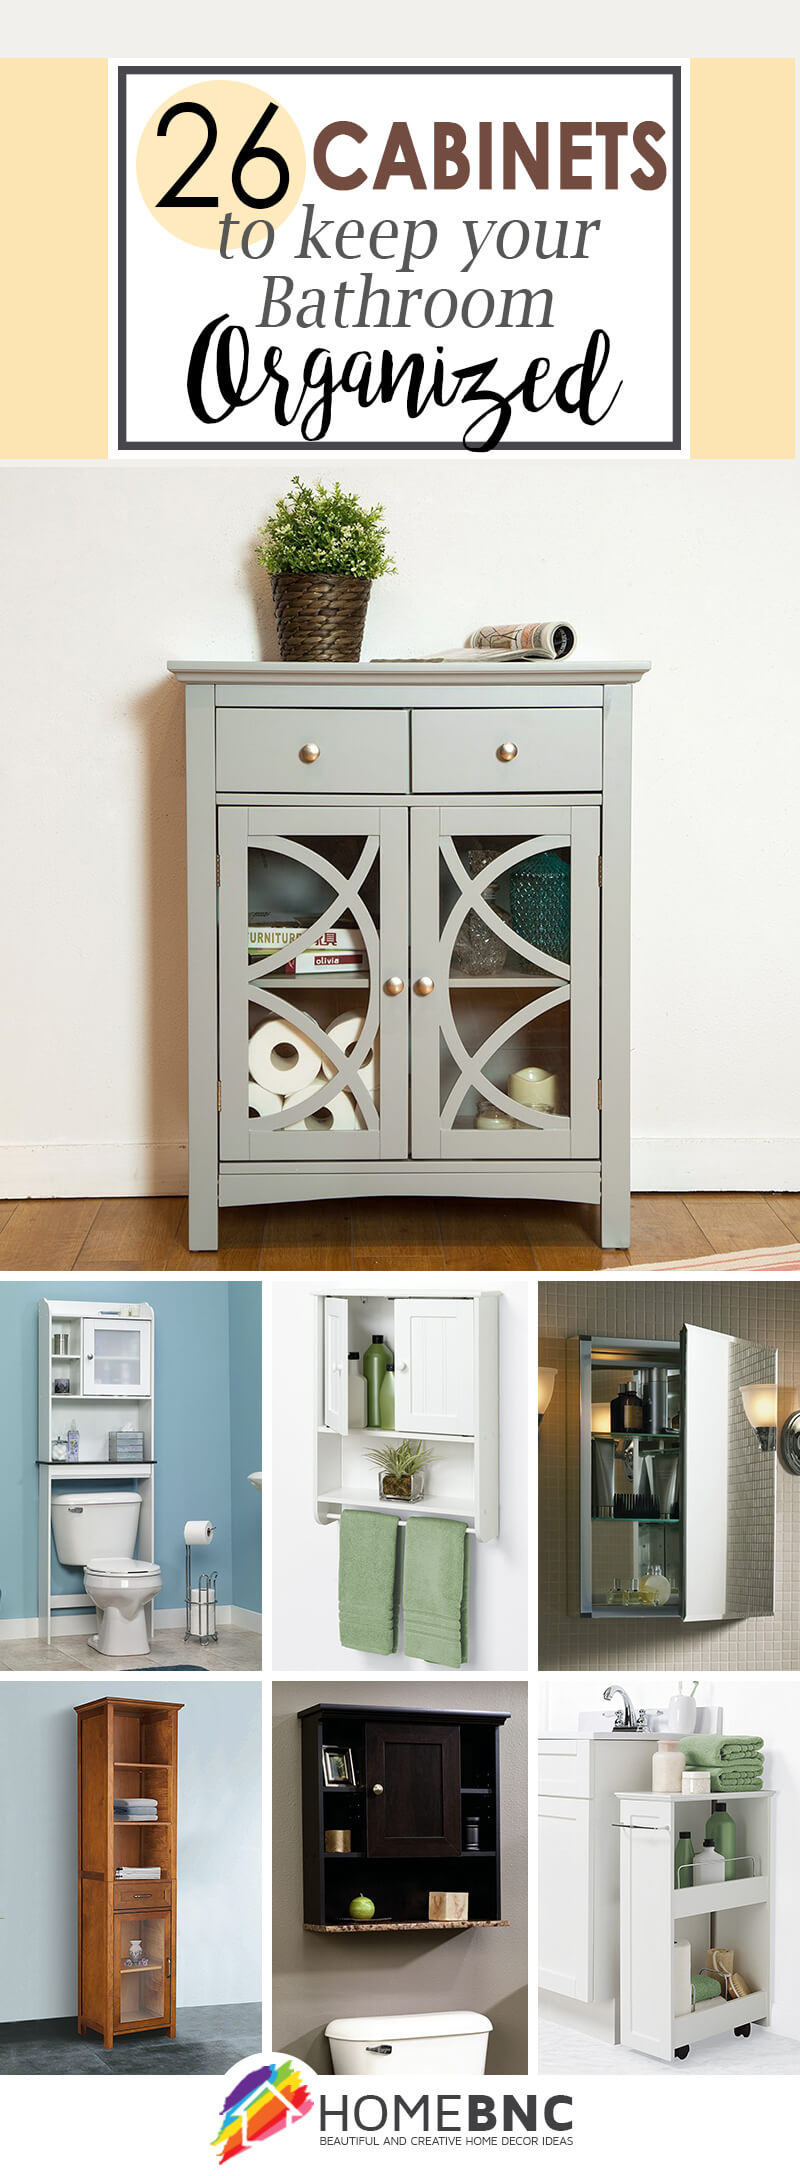 bathroom storage cabinets pinterest share homebnc